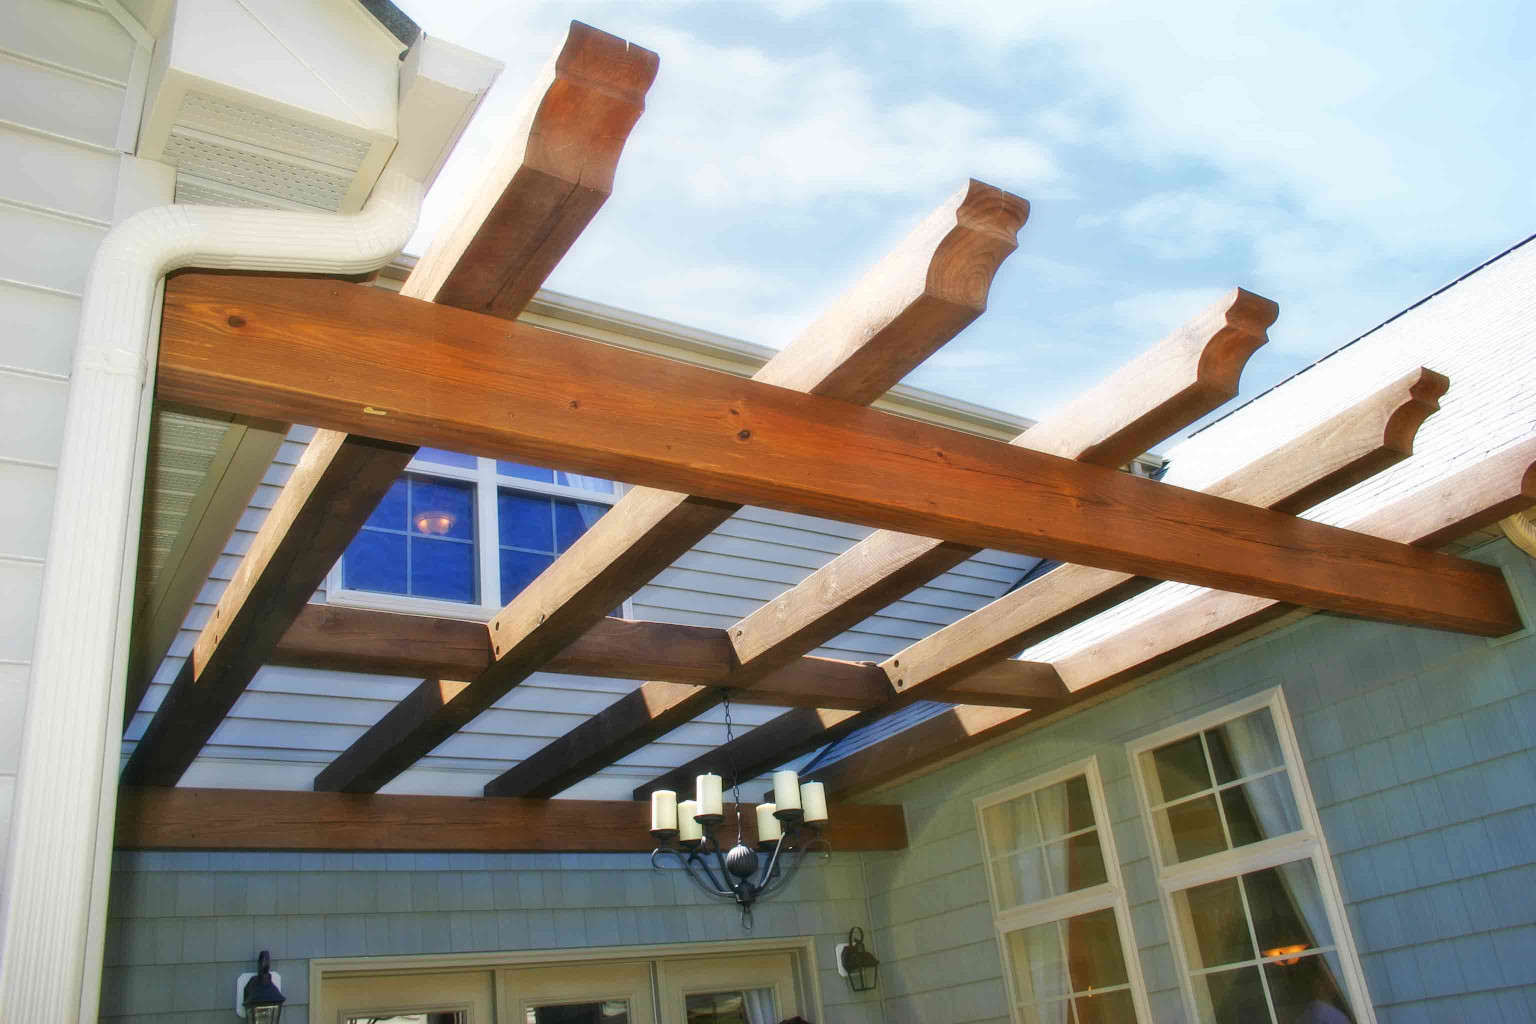 This wood pergola is a great way to add shade and appeal to this courtyard.